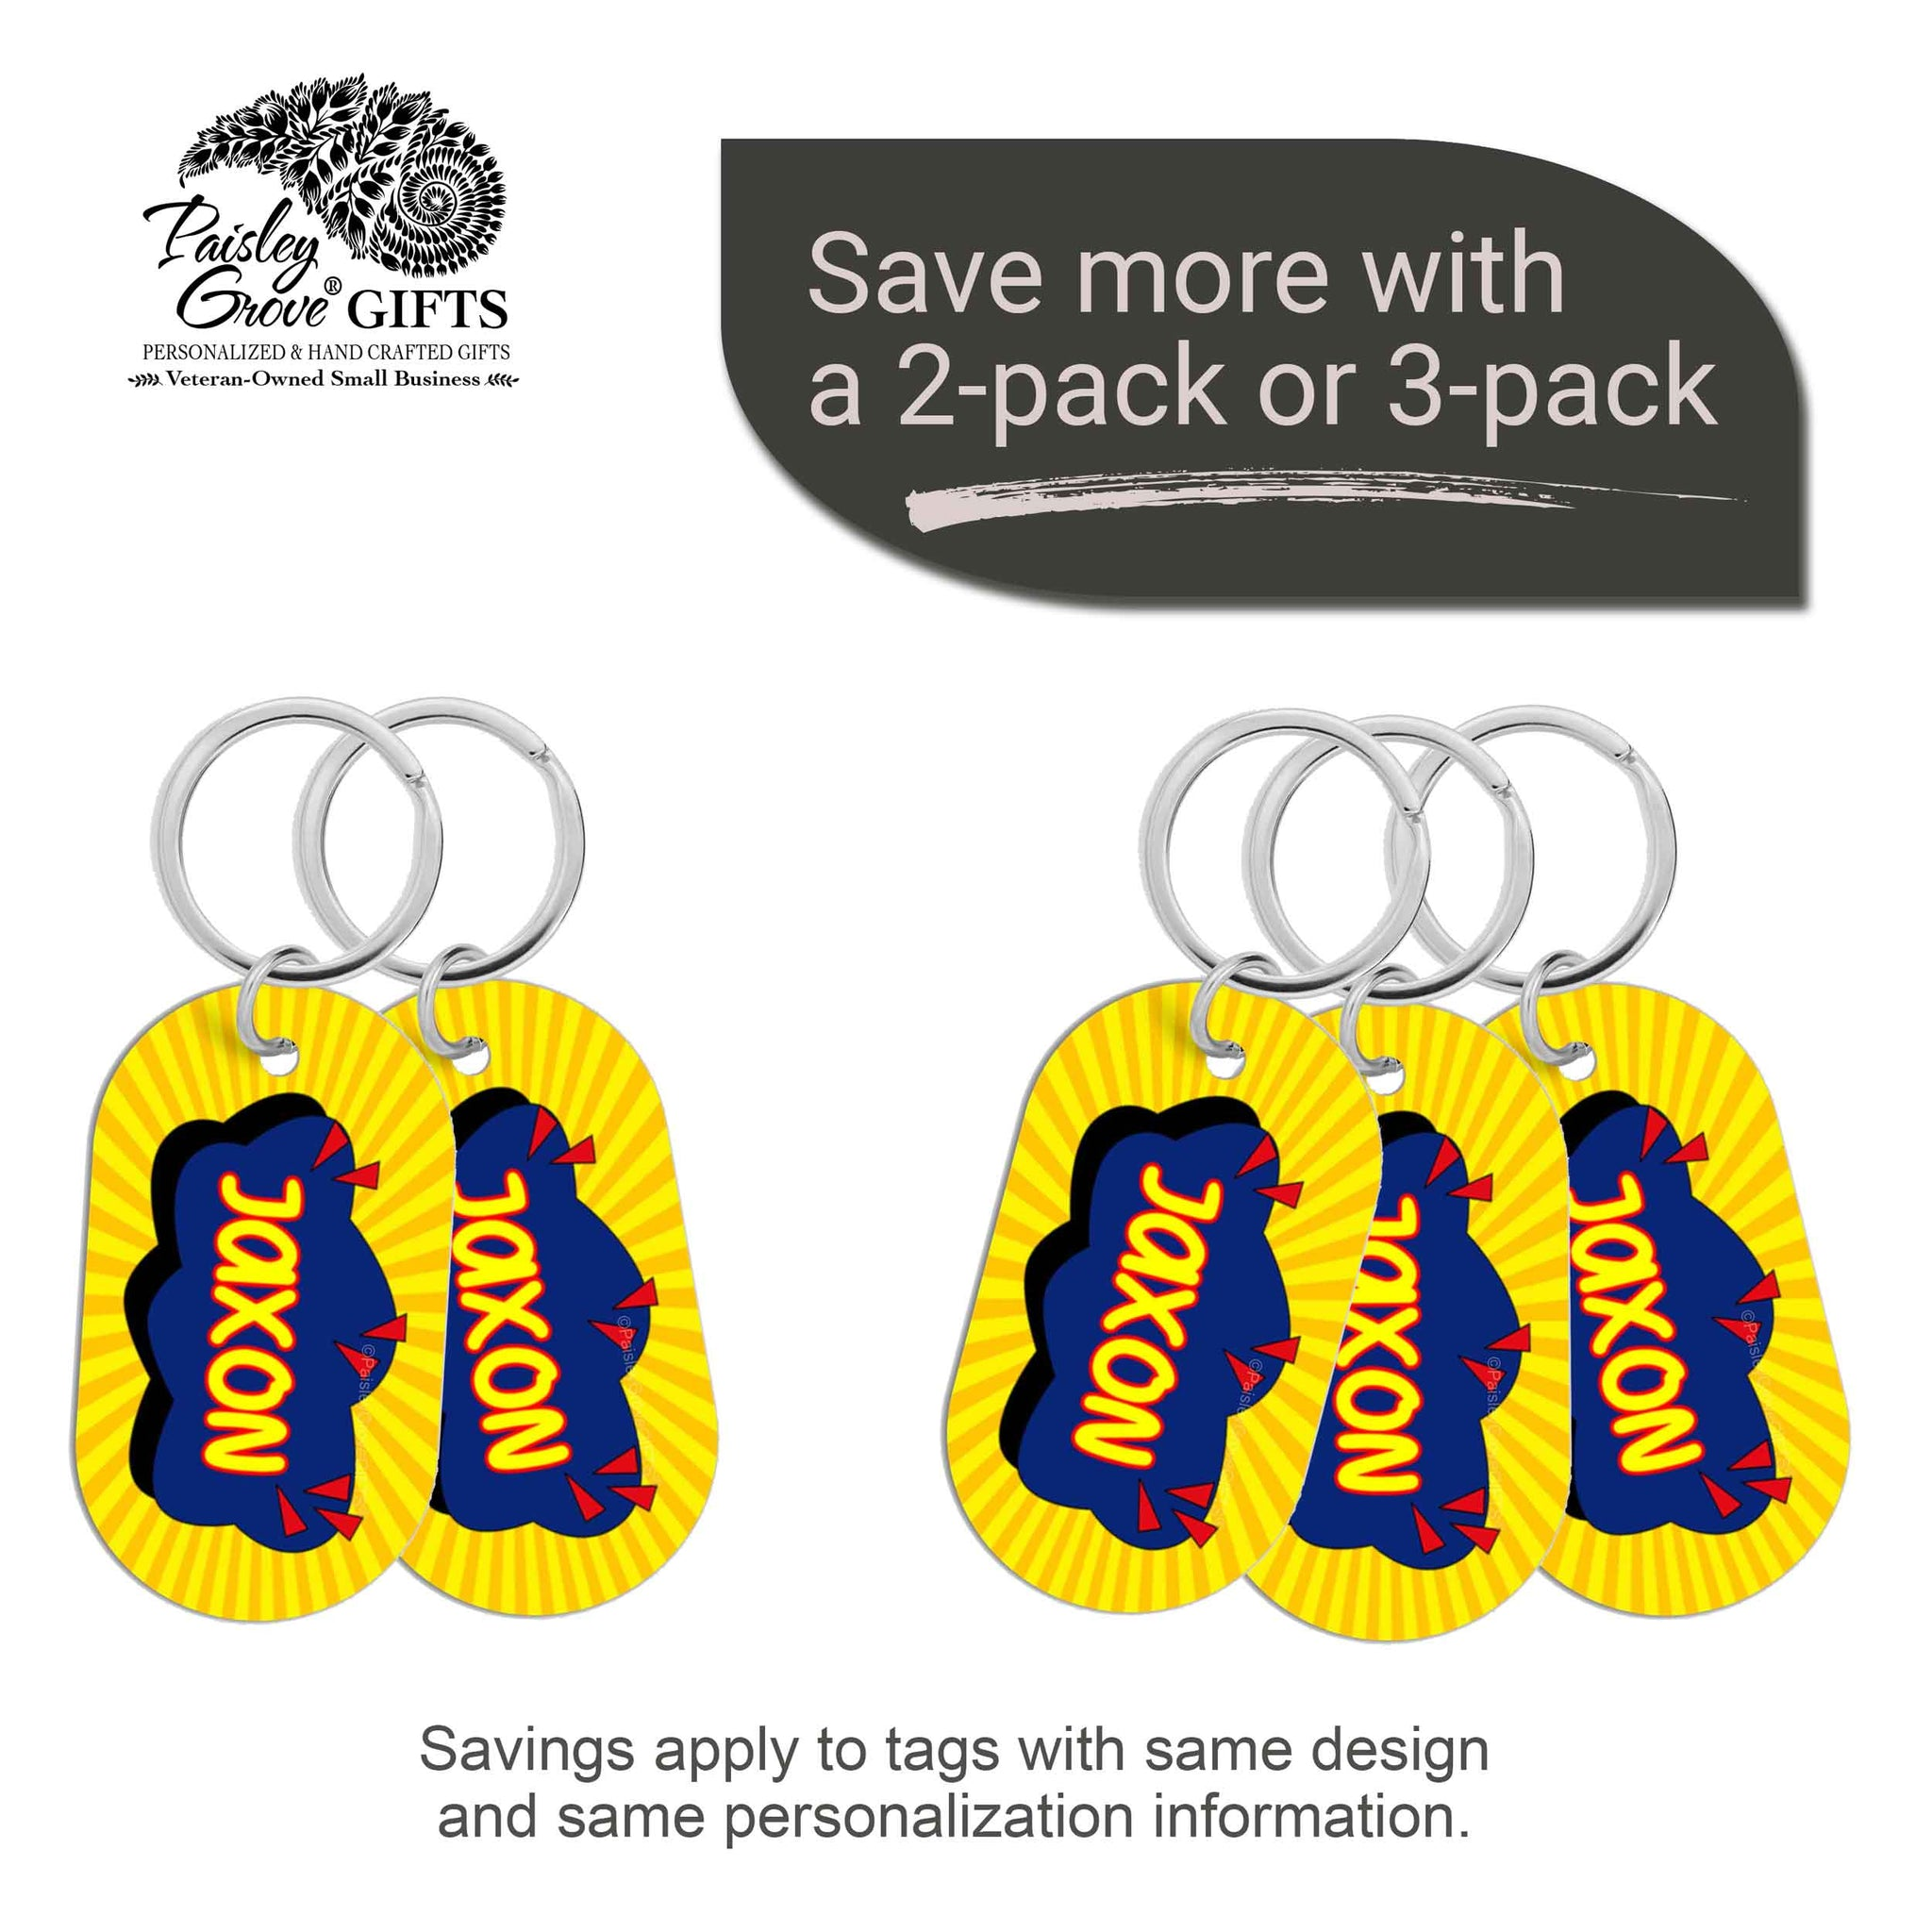 CopyrightPaisleyGroveGIFTS S070a2 Personalized bag ID tags for luggage or bags 2 or 3 pack option savings